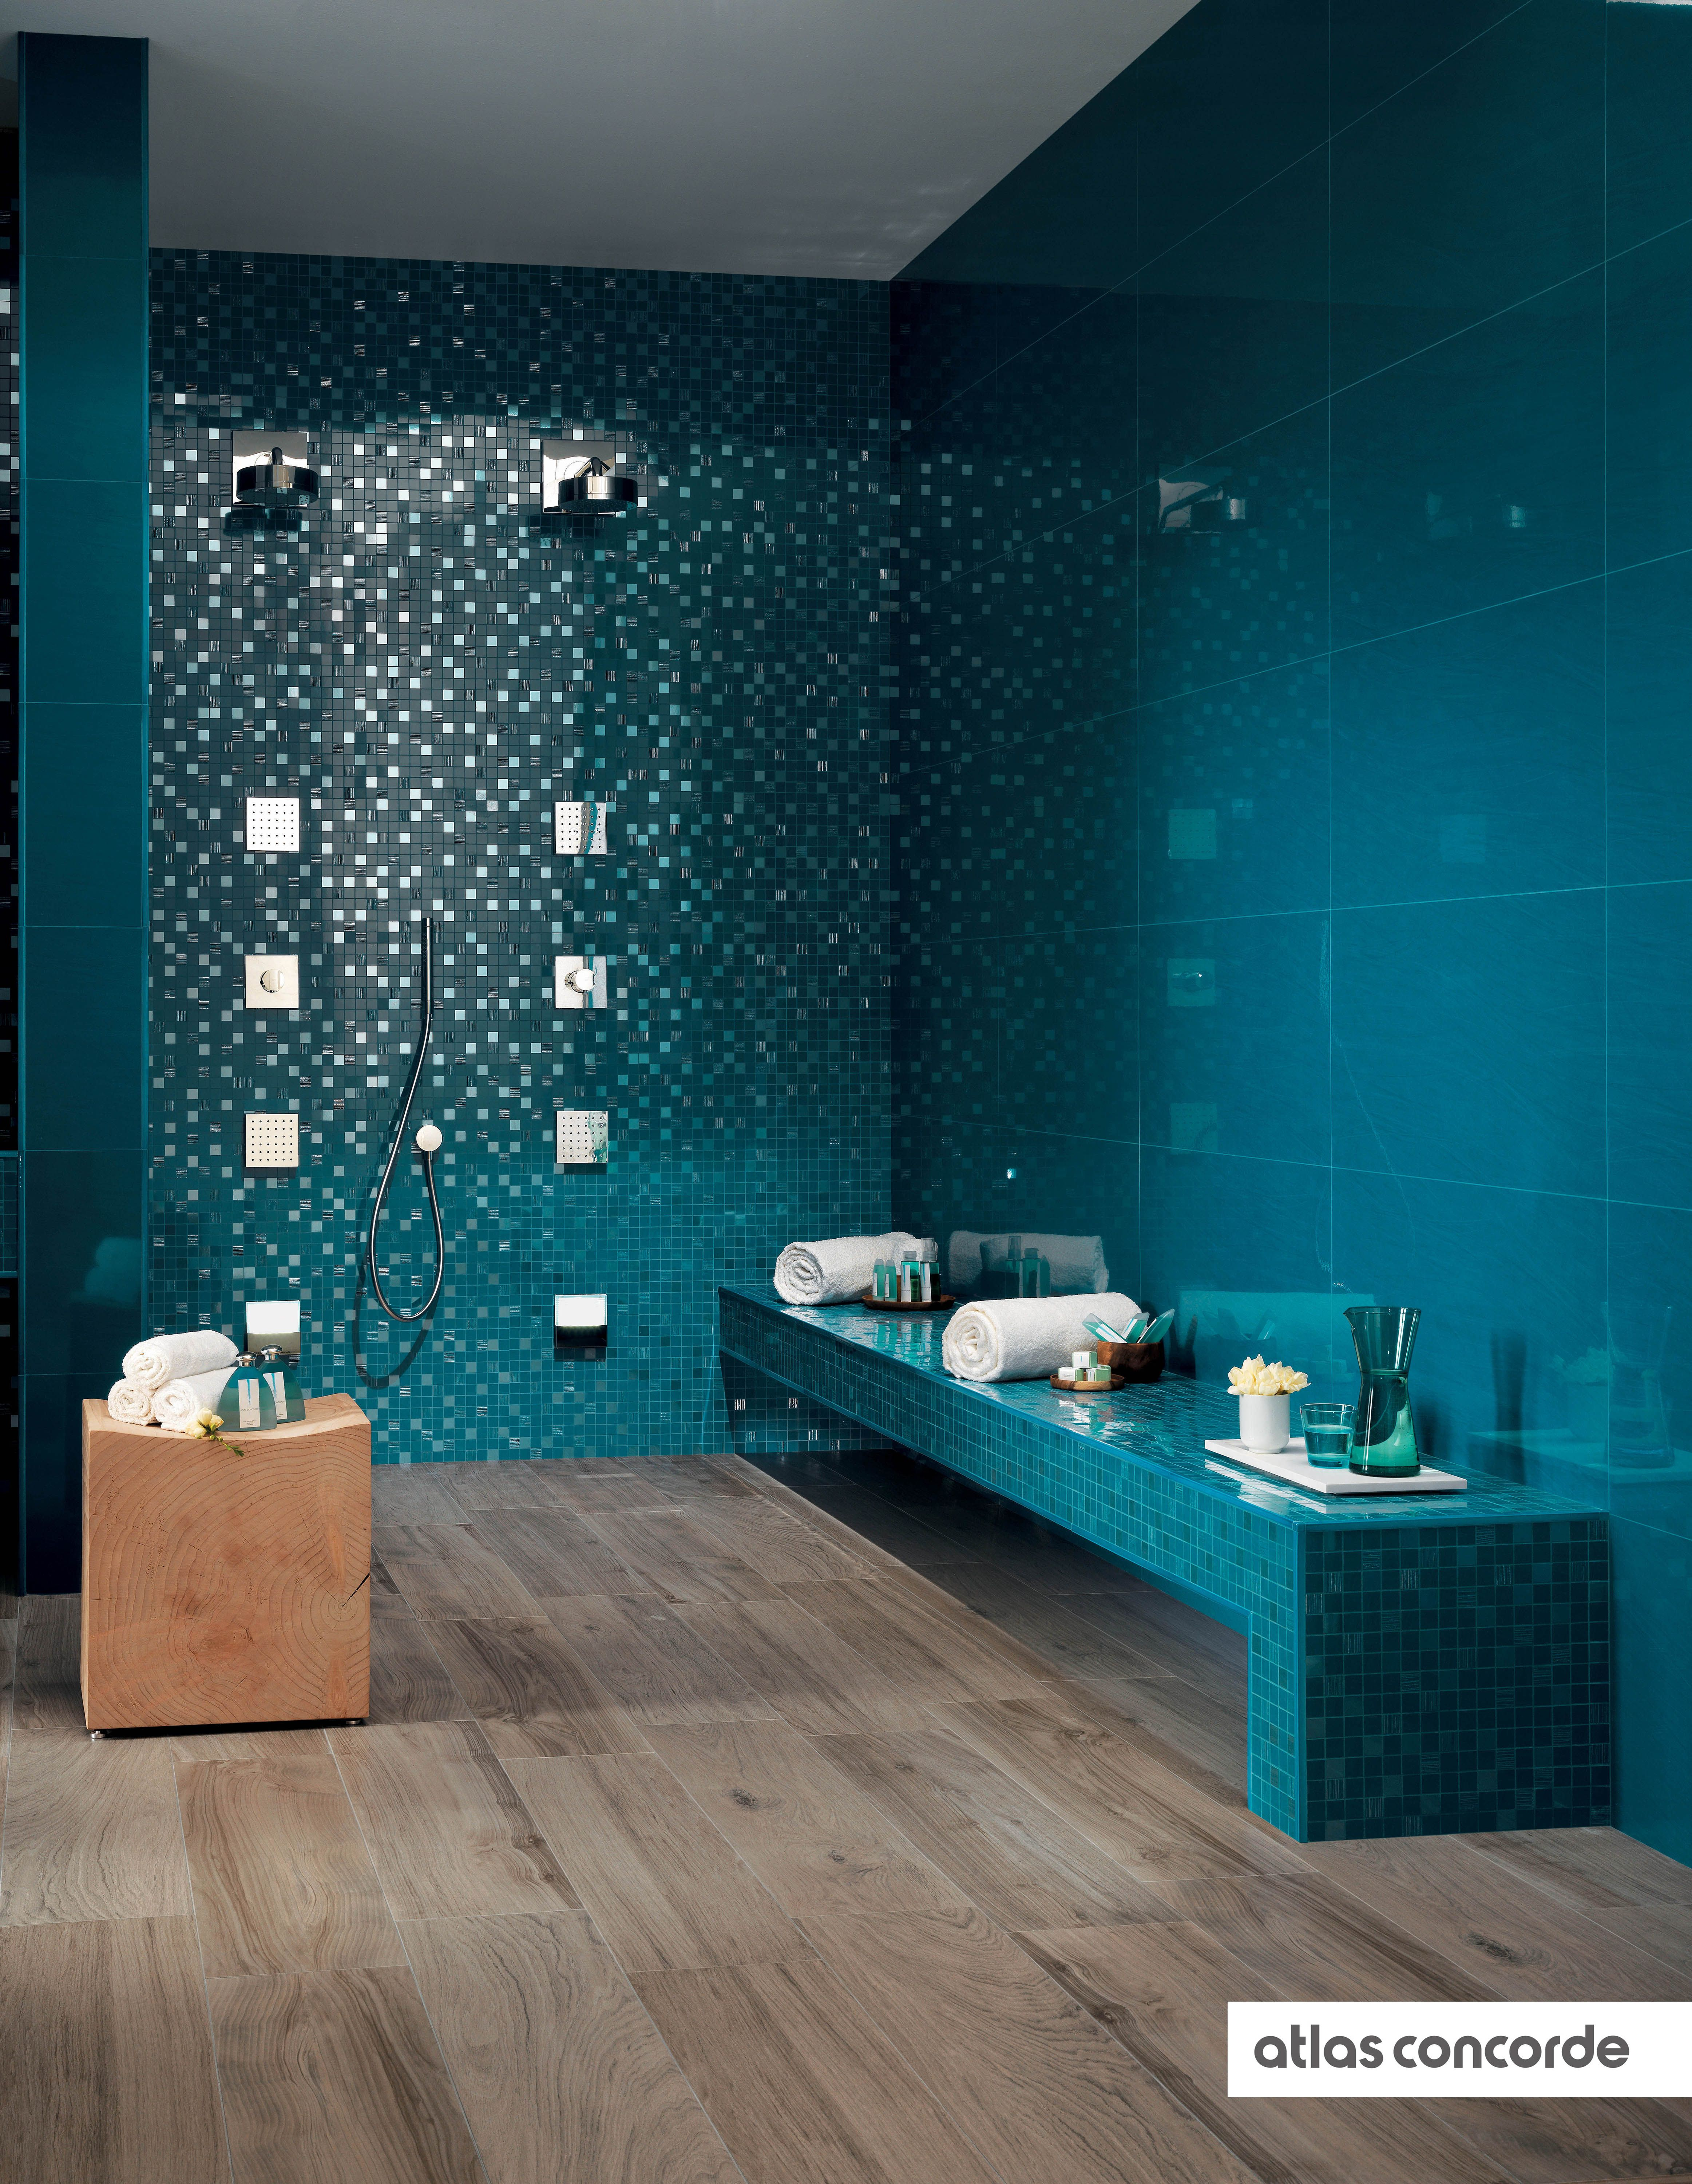 Collections | Pinterest | Concorde, Mosaic bathroom and Color tile